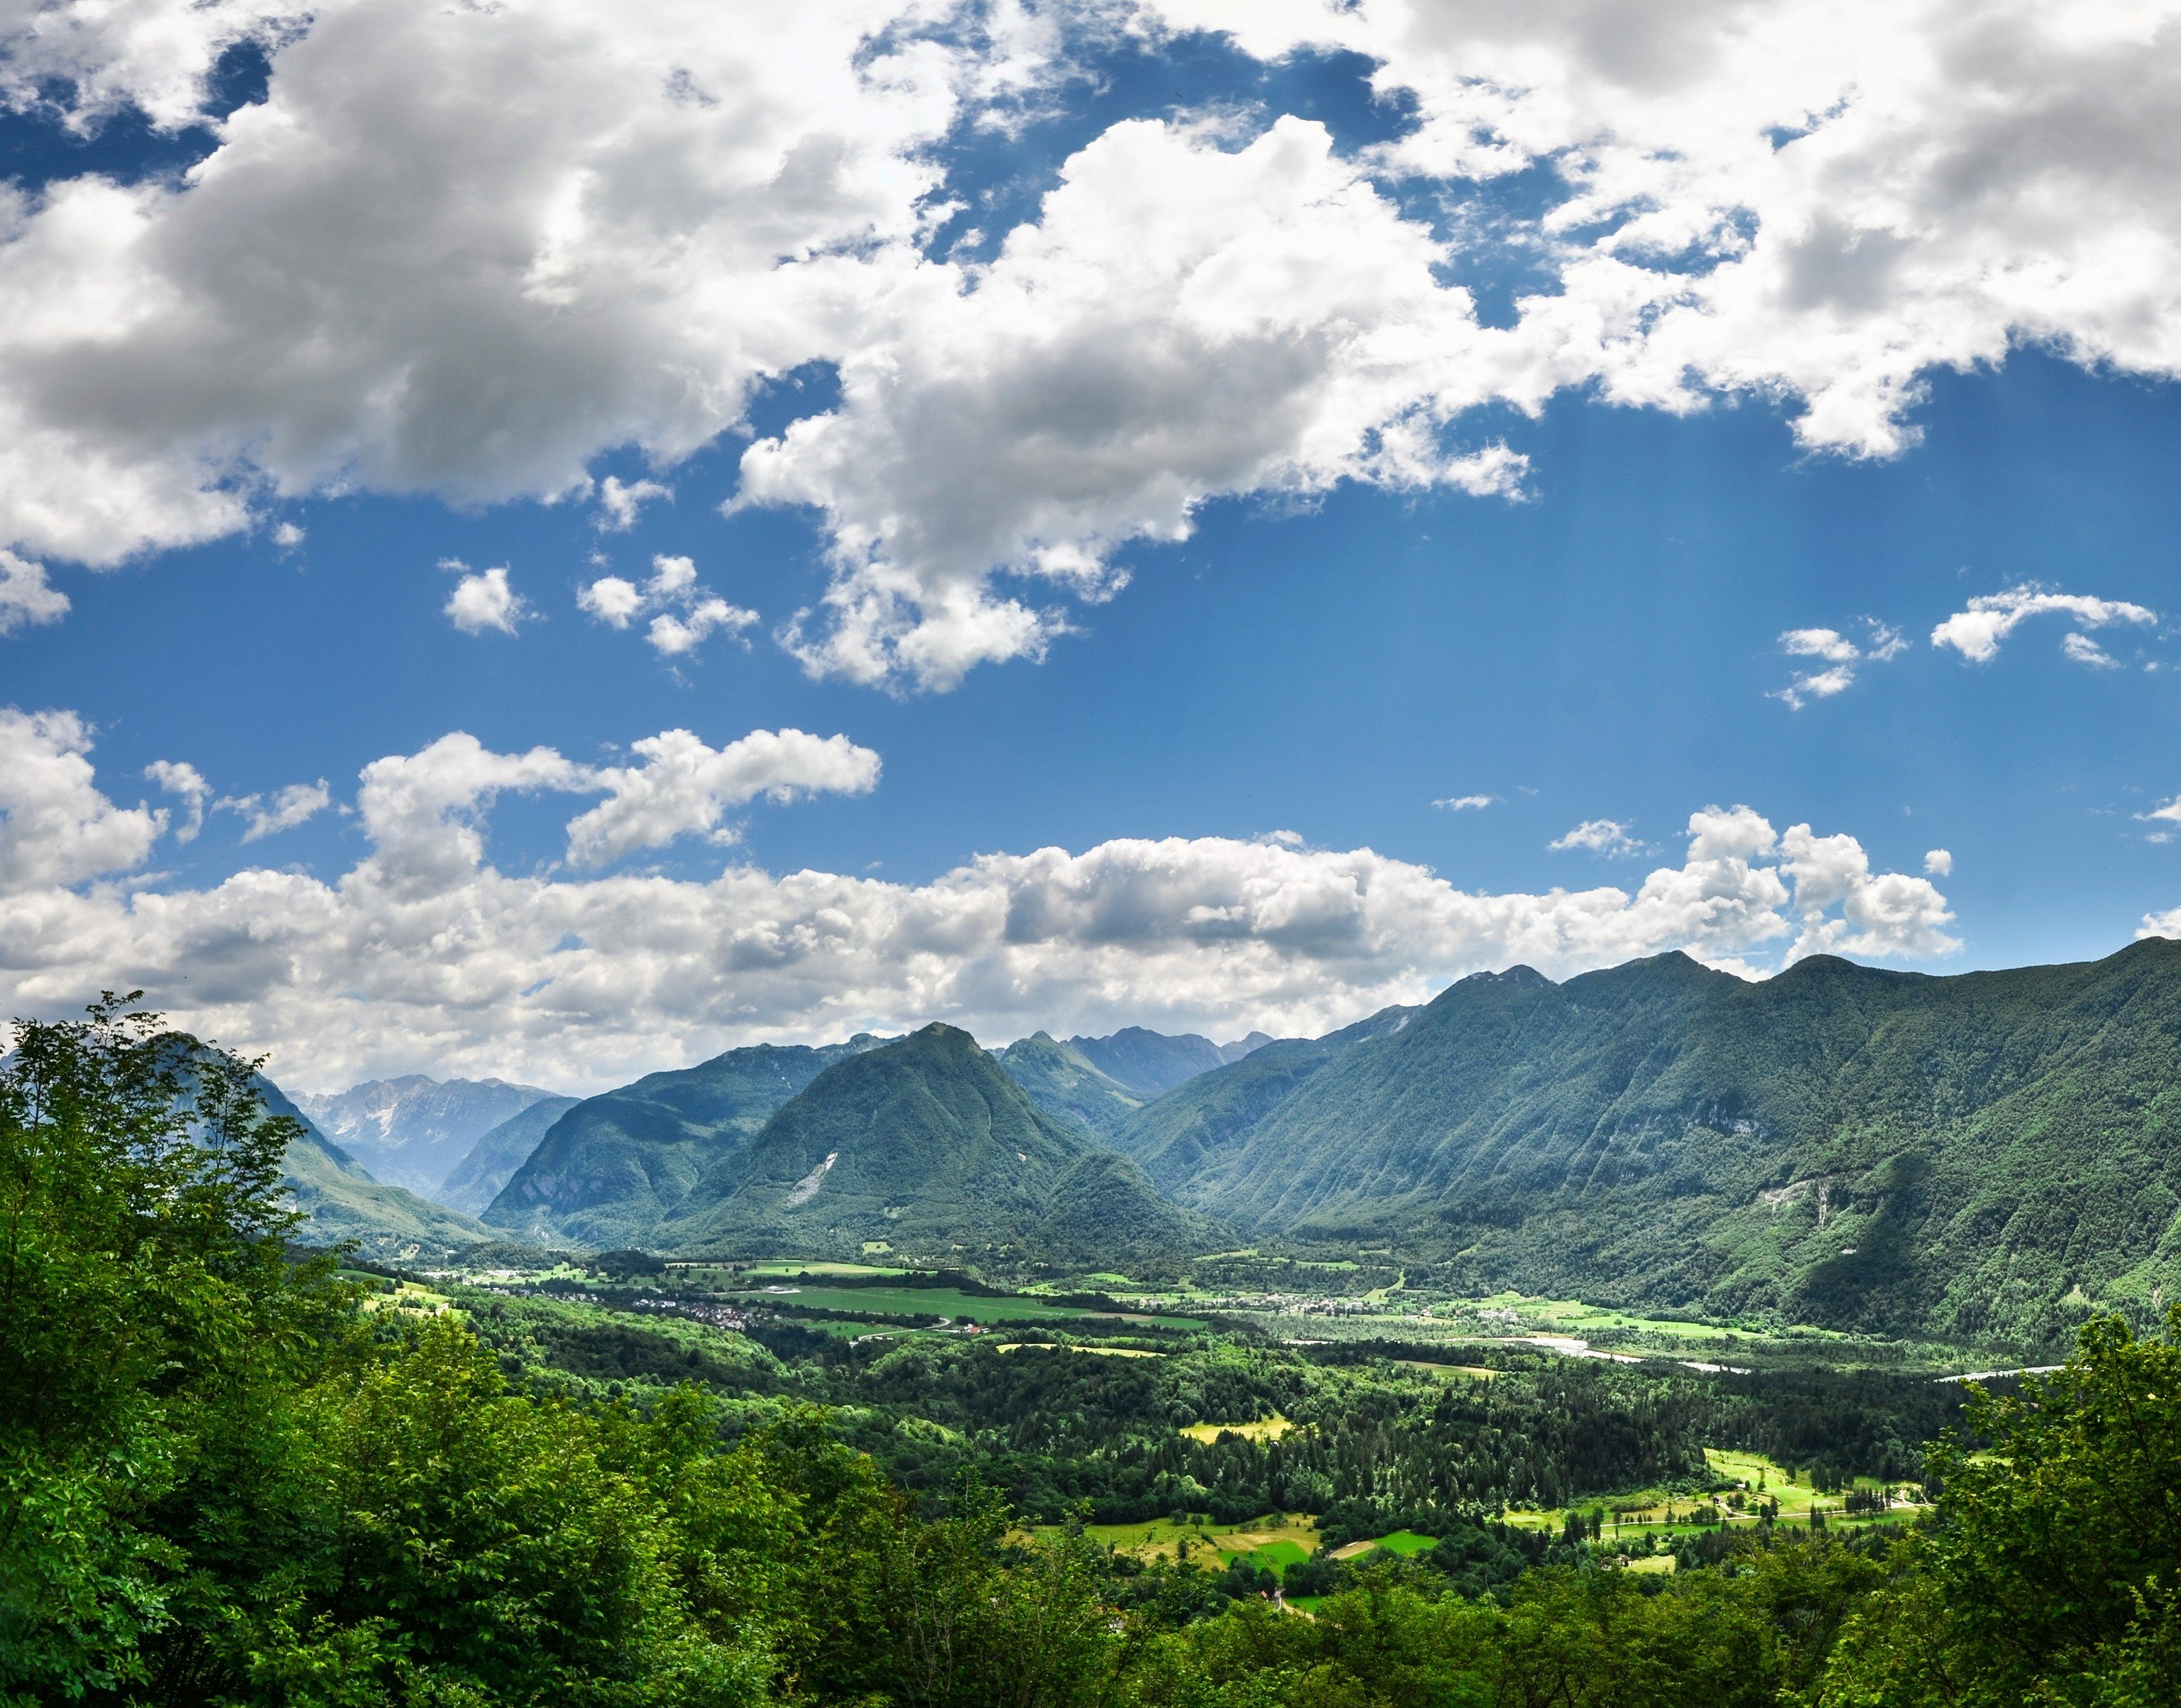 Trip Ideas sky mountain outdoor highland mountainous landforms Nature cloud geographical feature landform mountain range atmospheric phenomenon tree hill clouds valley landscape Forest background rural area meadow alps plateau lush day hillside surrounded